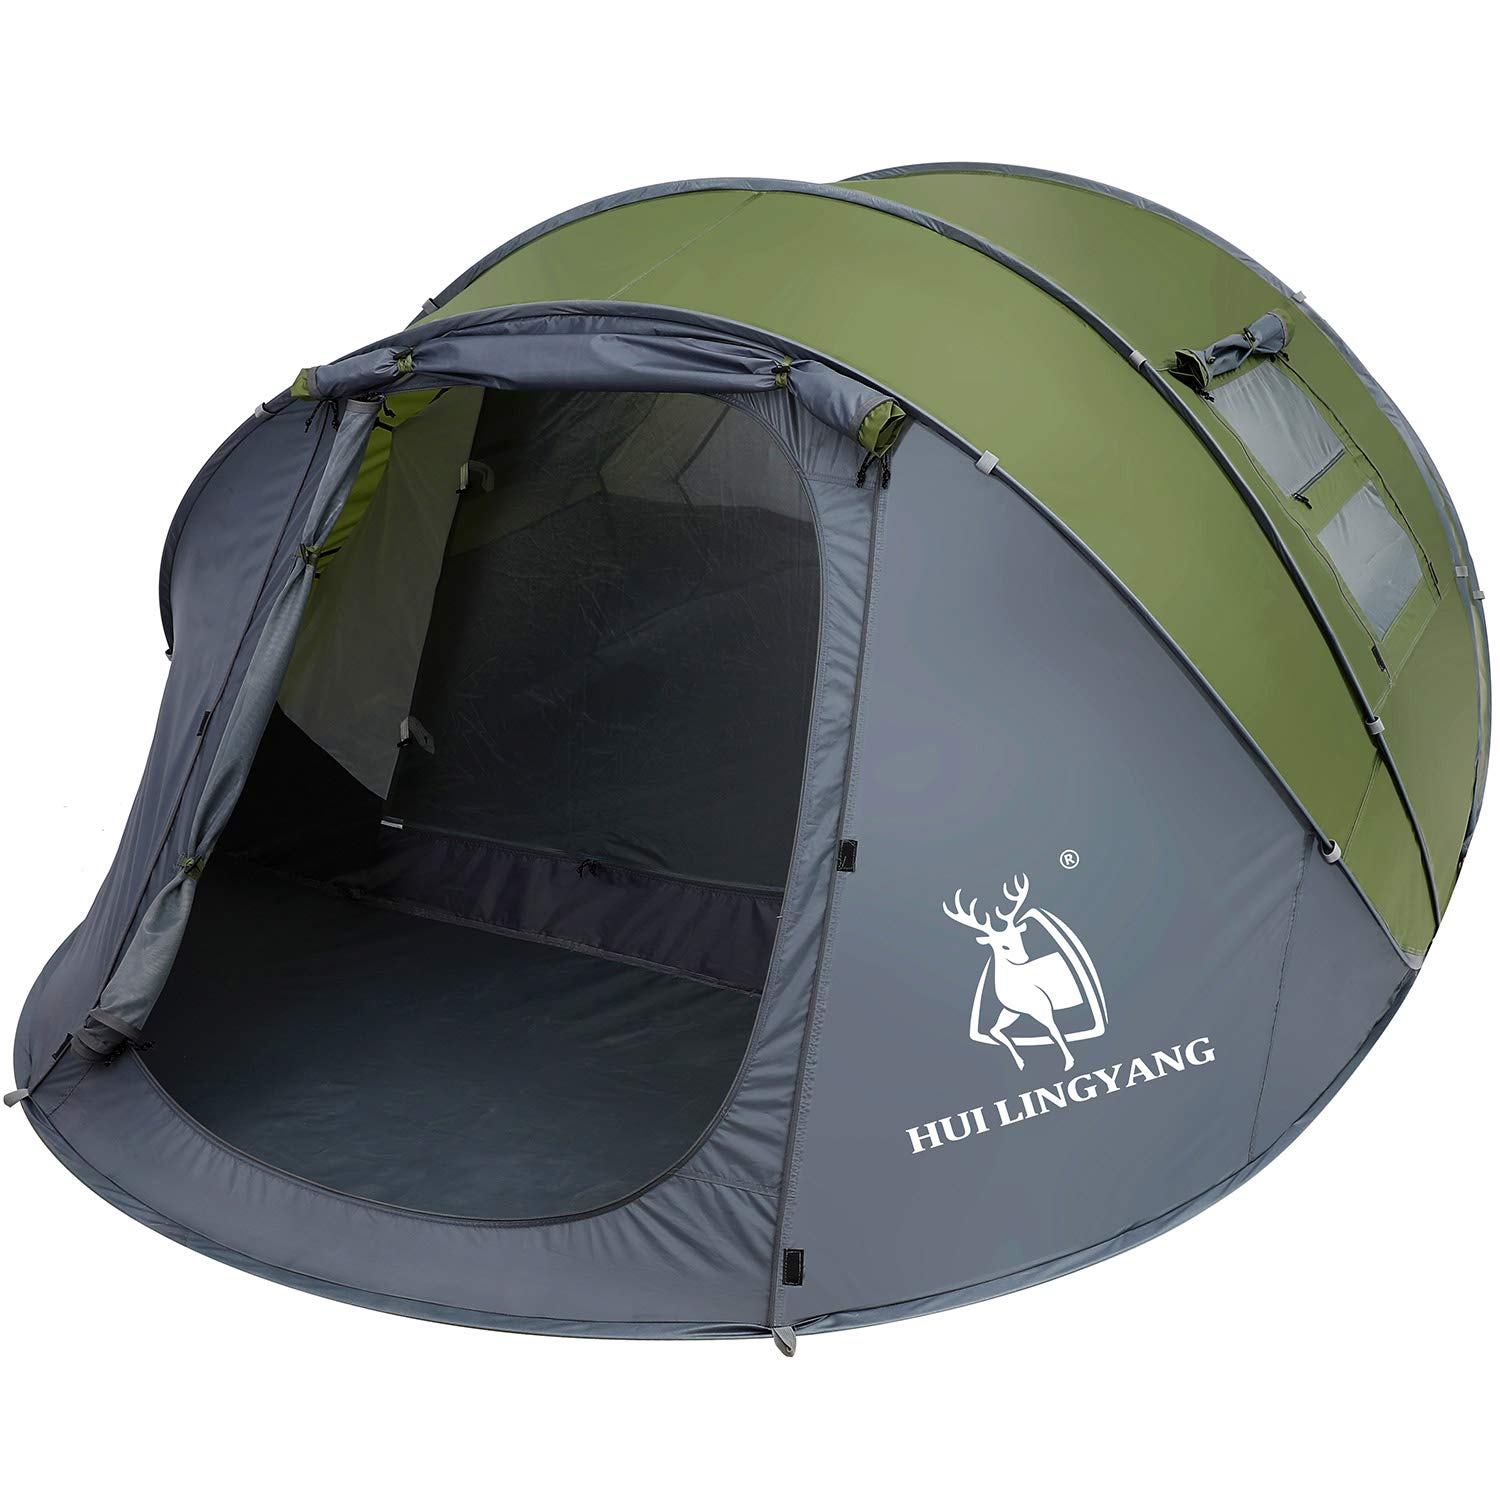 HUI LINGYANG 6 Person Easy Pop Up Tent-Automatic Setup,Waterproof, Double Layer - Instant Family Tents for Camping,Hiking & Traveling,Green by HUI LINGYANG